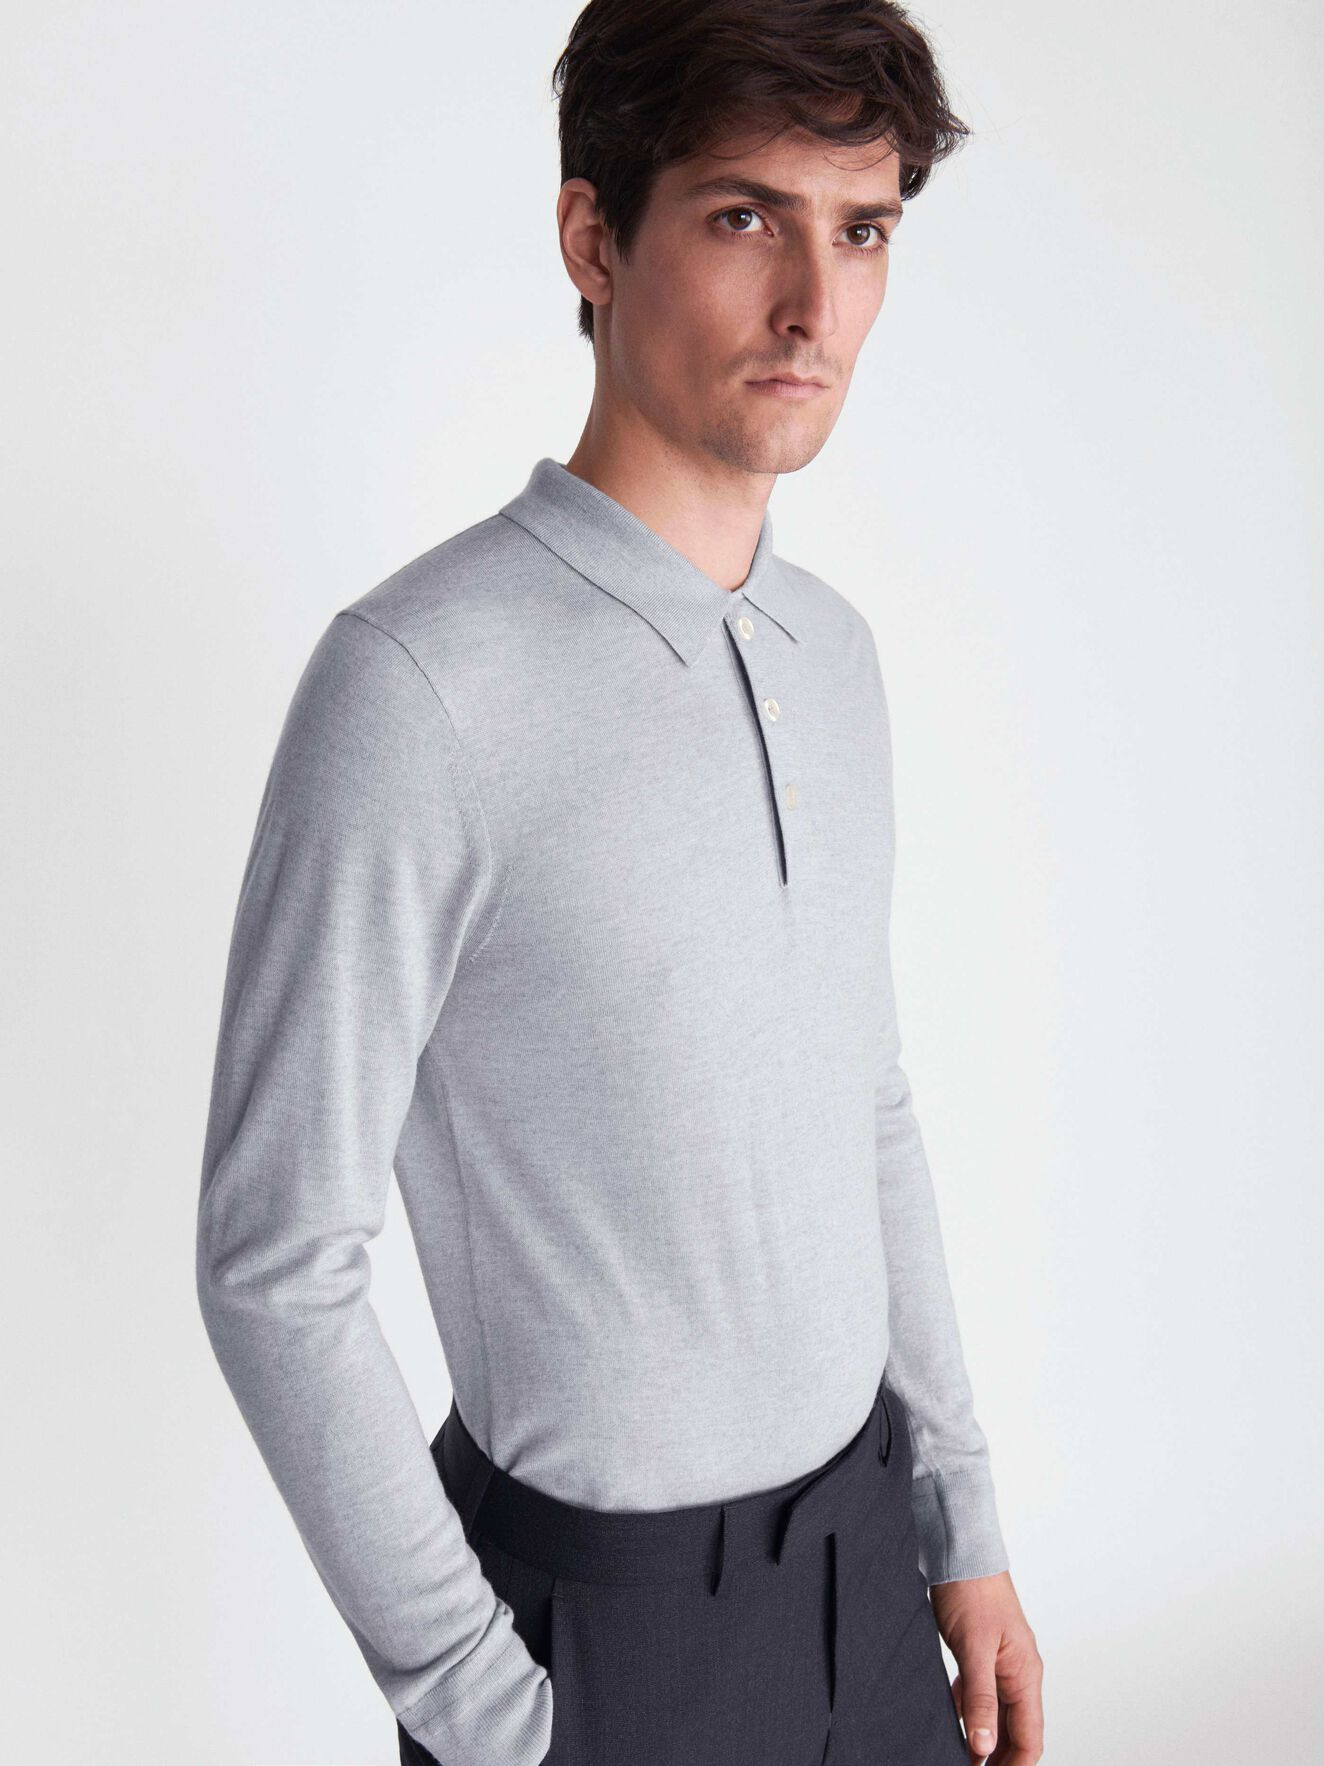 Newton Pullover in Light grey melange from Tiger of Sweden